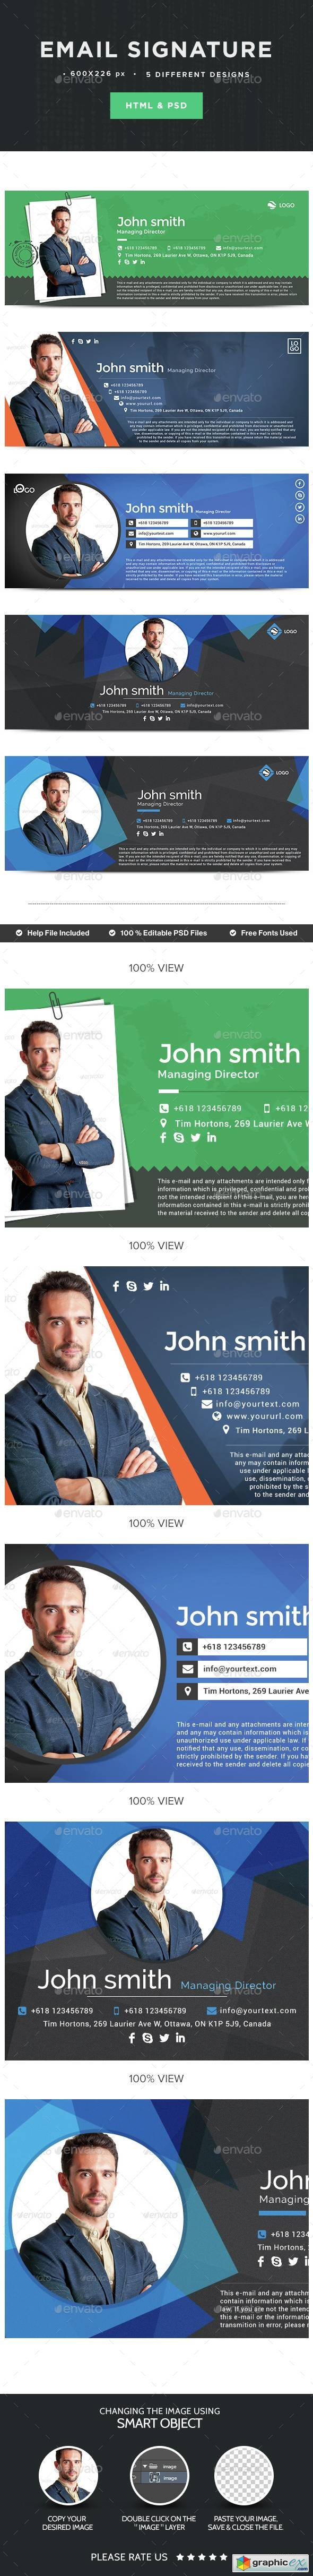 Email Signature - 5 Designs - HTML Files Included